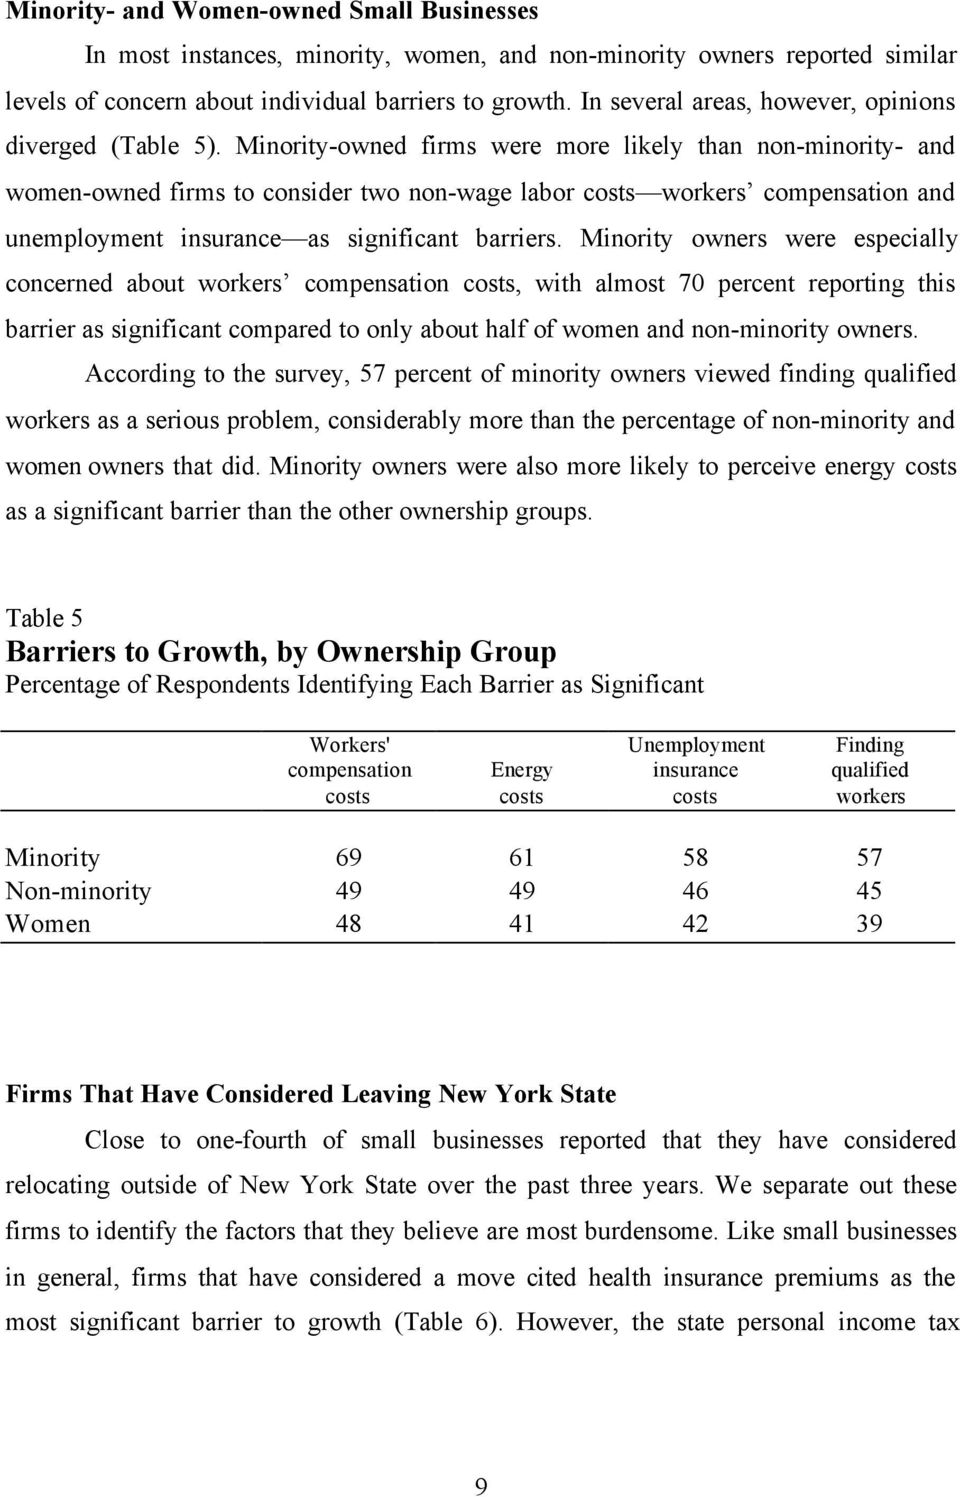 Minority-owned firms were more likely than non-minority- and women-owned firms to consider two non-wage labor costs workers compensation and unemployment insurance as significant barriers.